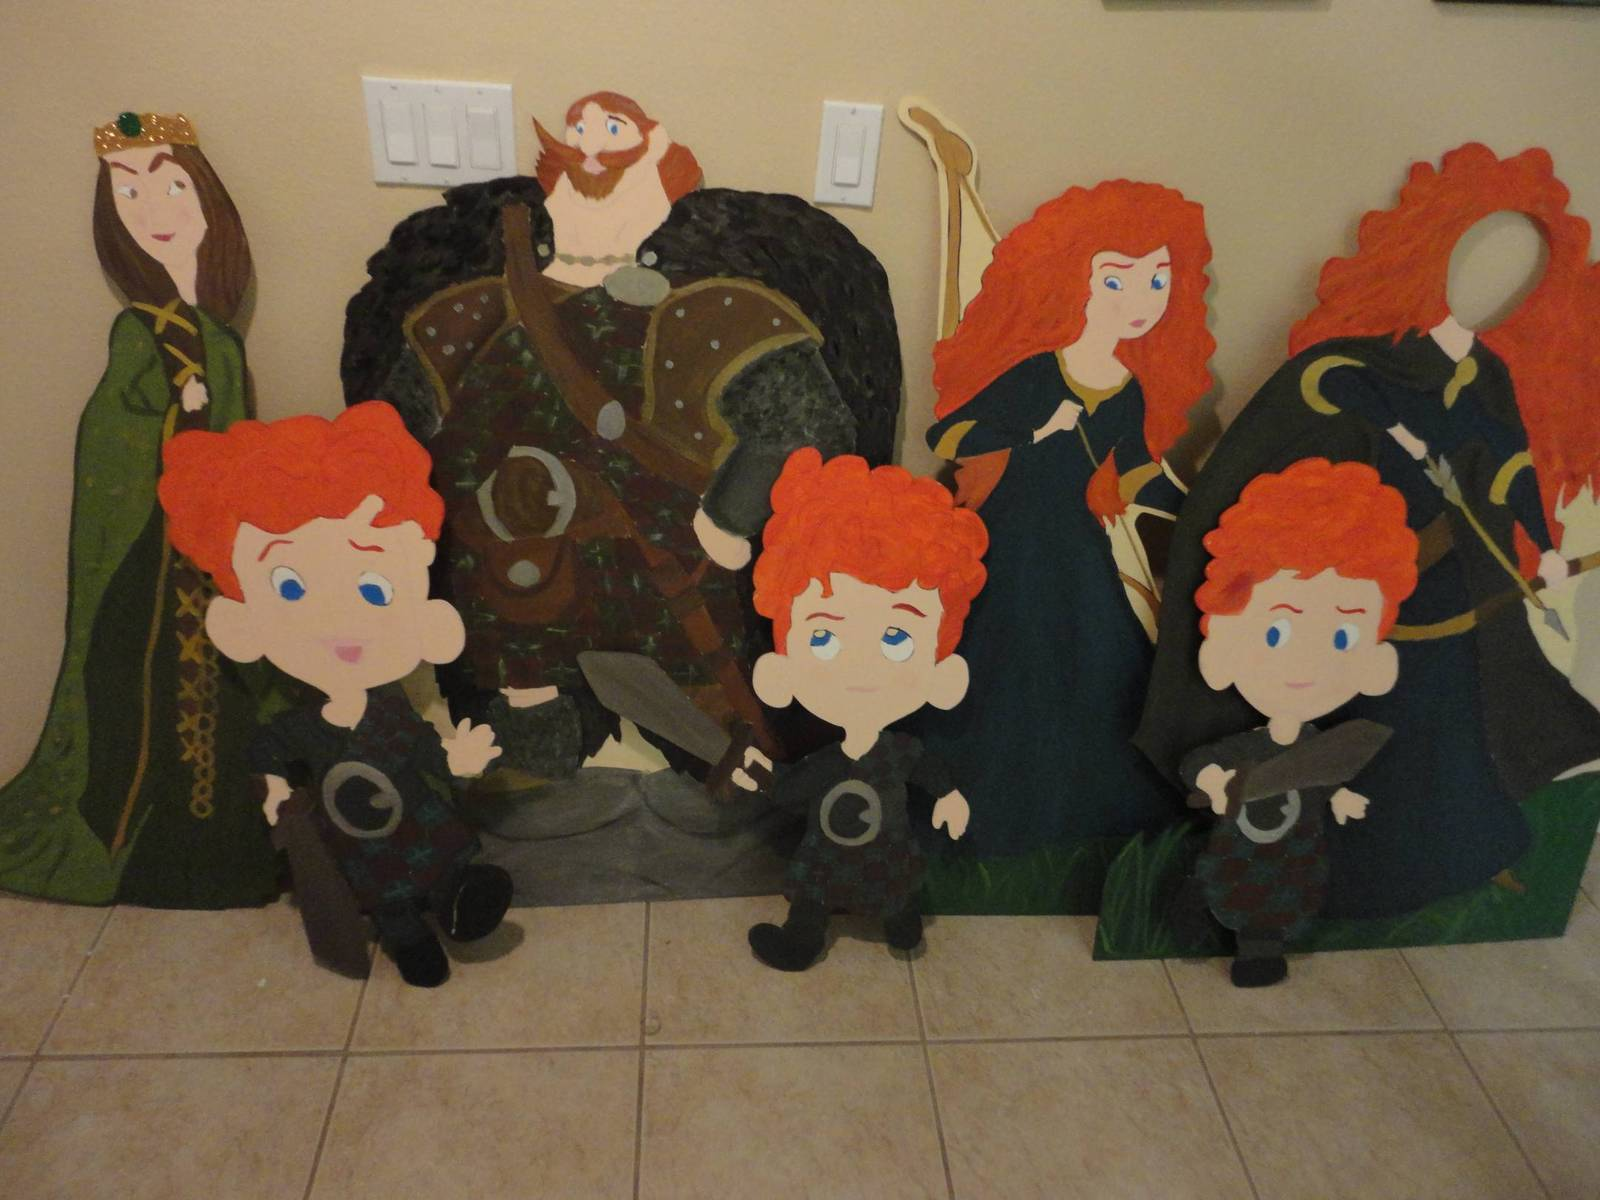 4 feet Brave Birthday Party Photo Props Standees - Set of 7